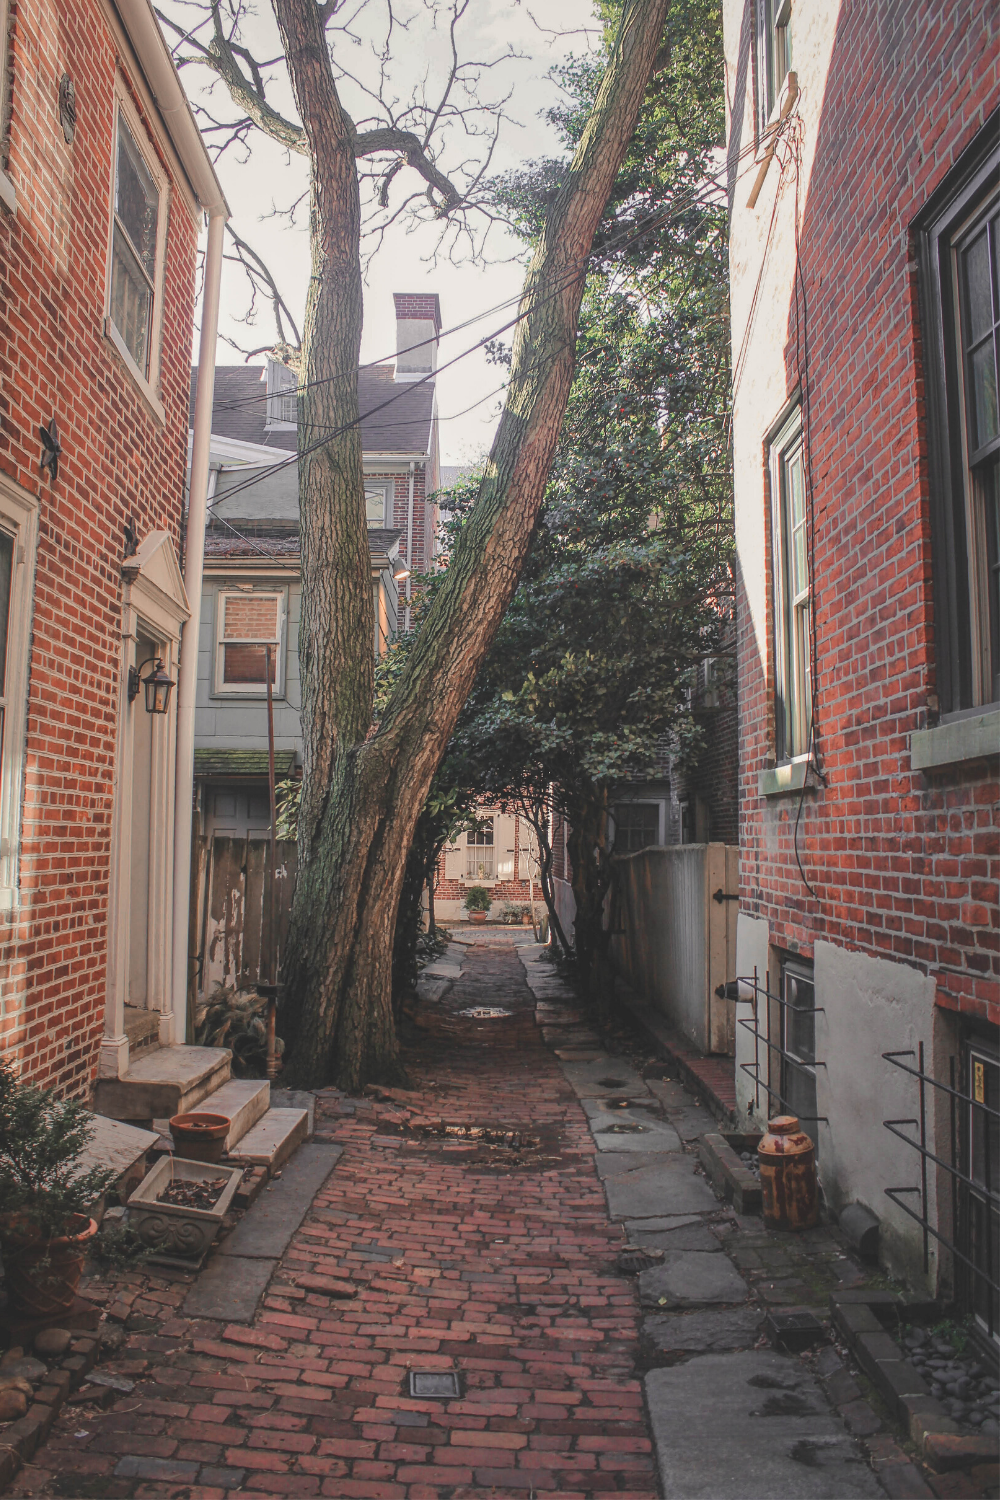 Elfreths Alley Christmas Tour 2020 One Day In Philadelphia Itinerary | Passport To Eden in 2020